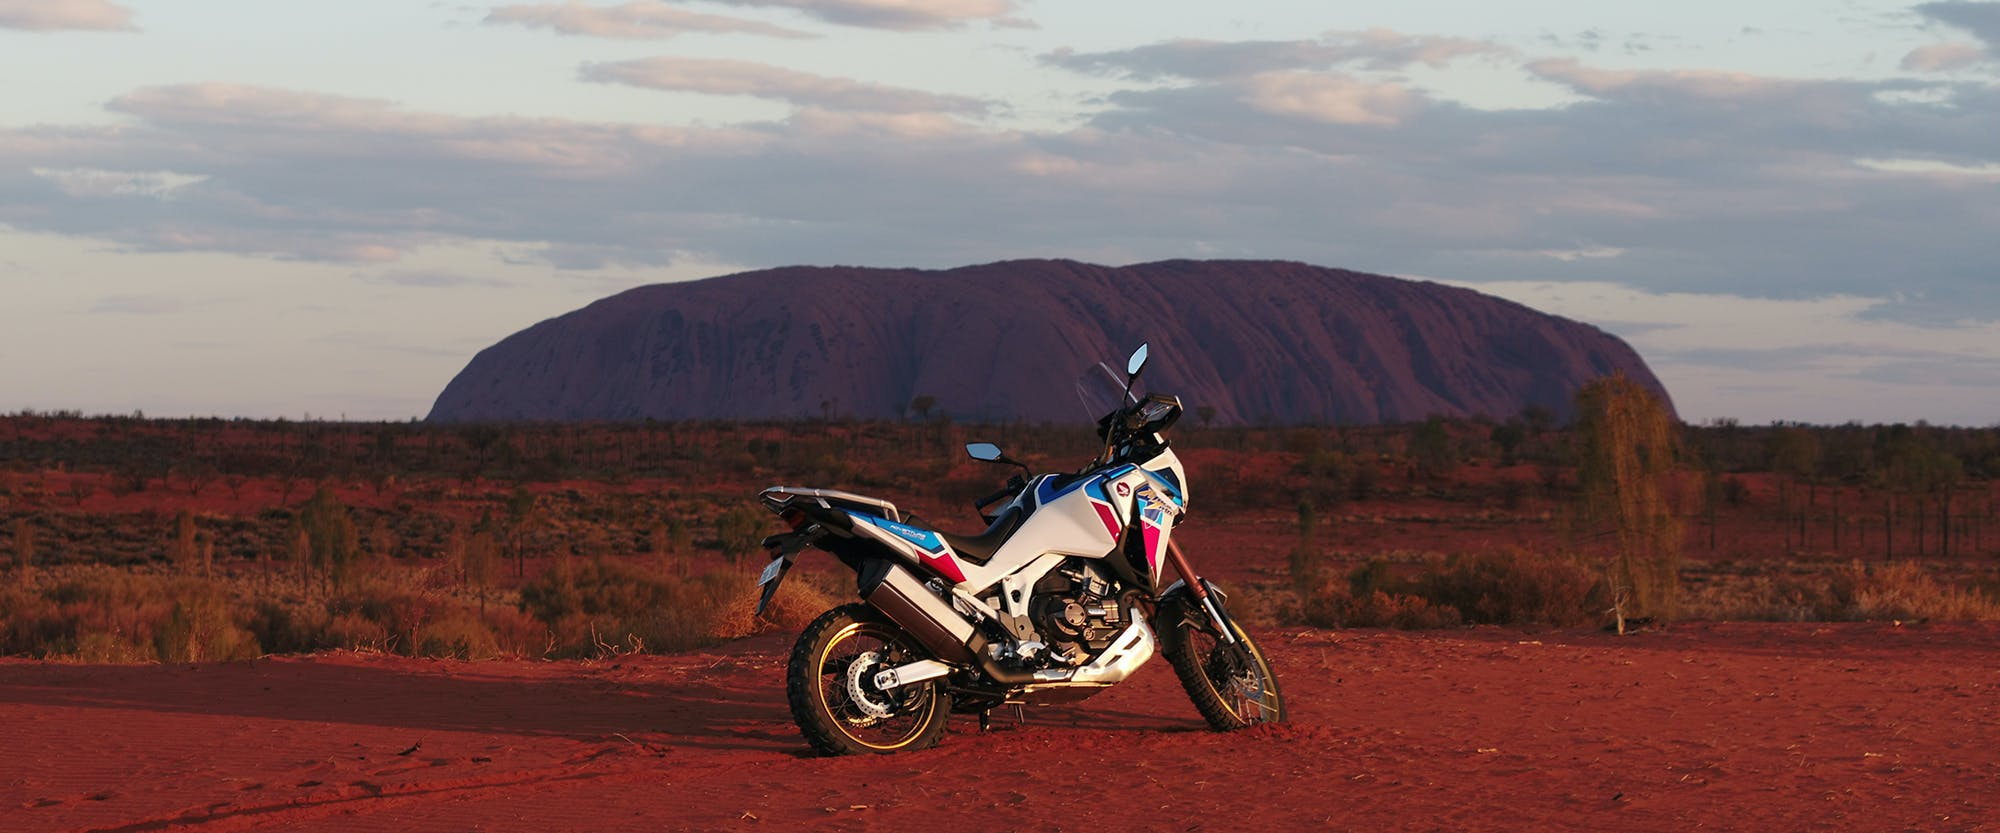 Honda Africa Twin Adventure Sports in Pearl Glare White colour, parked